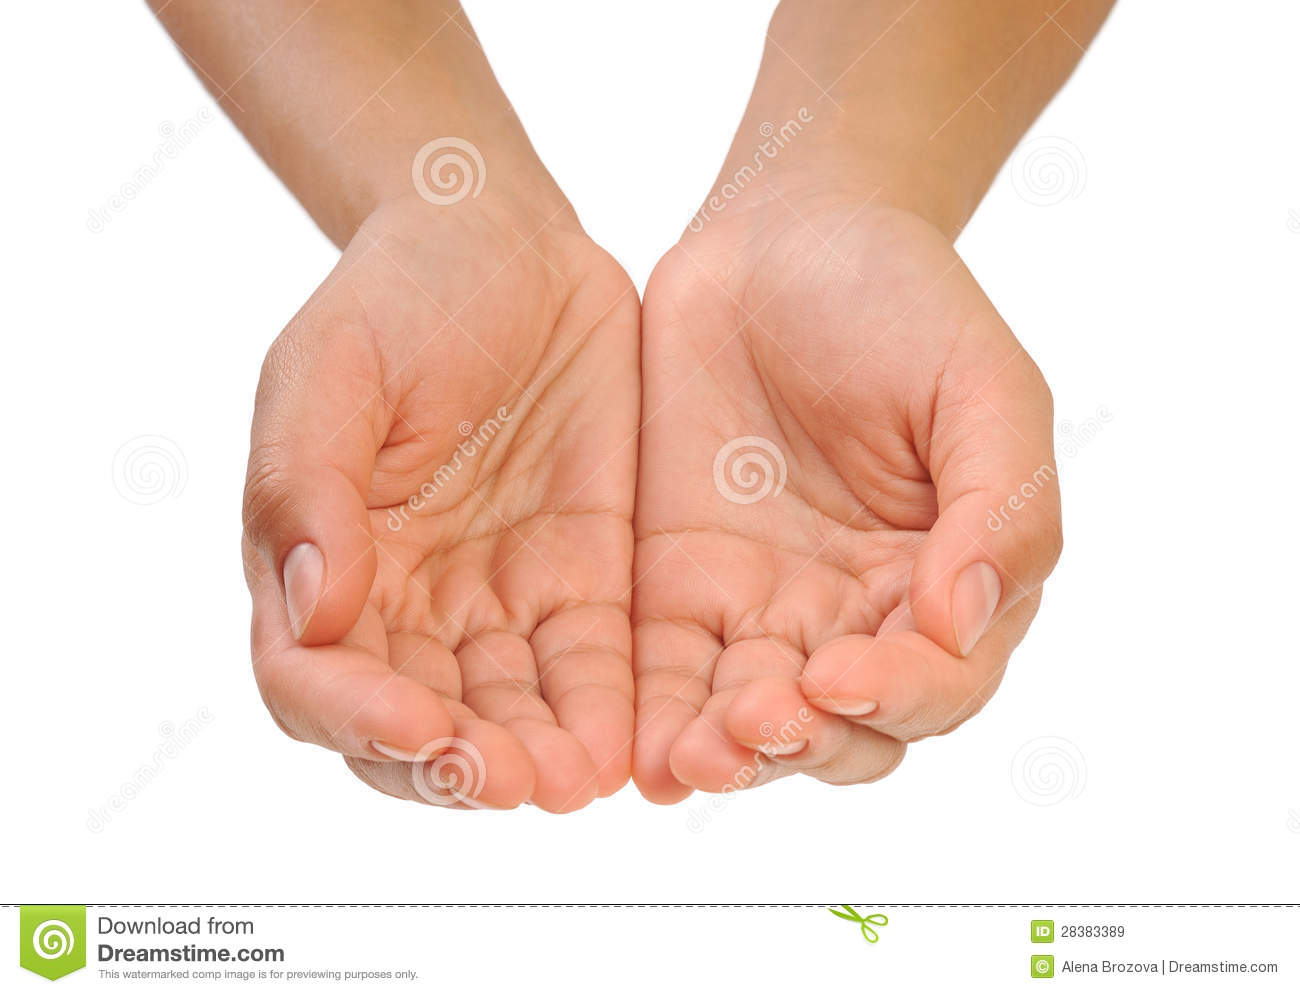 One cupped hand